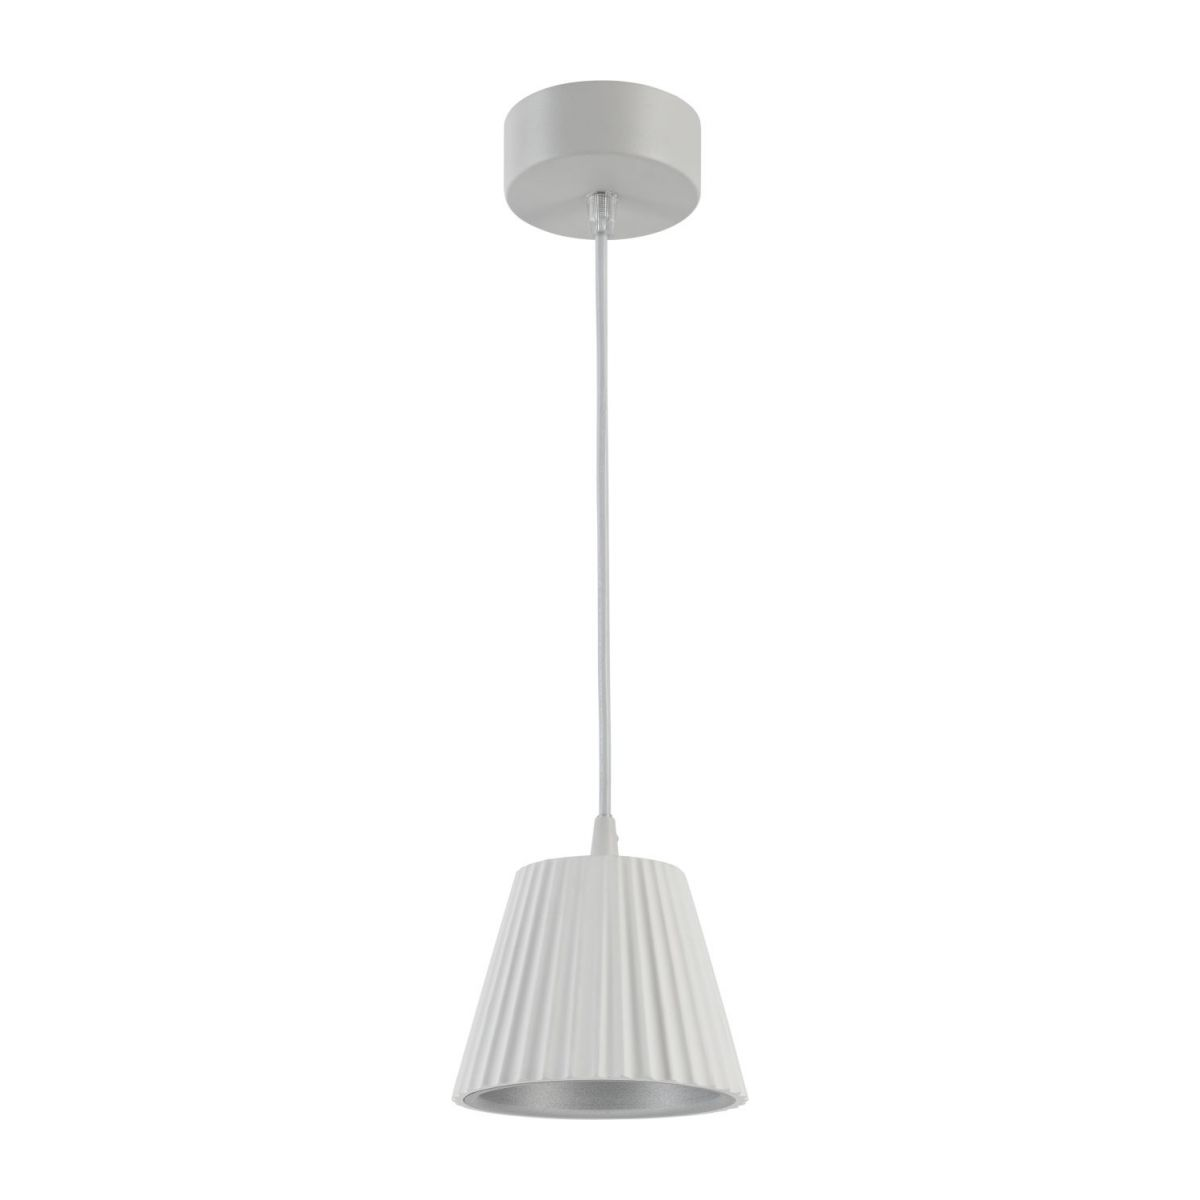 Led suspension made of gypsum, white